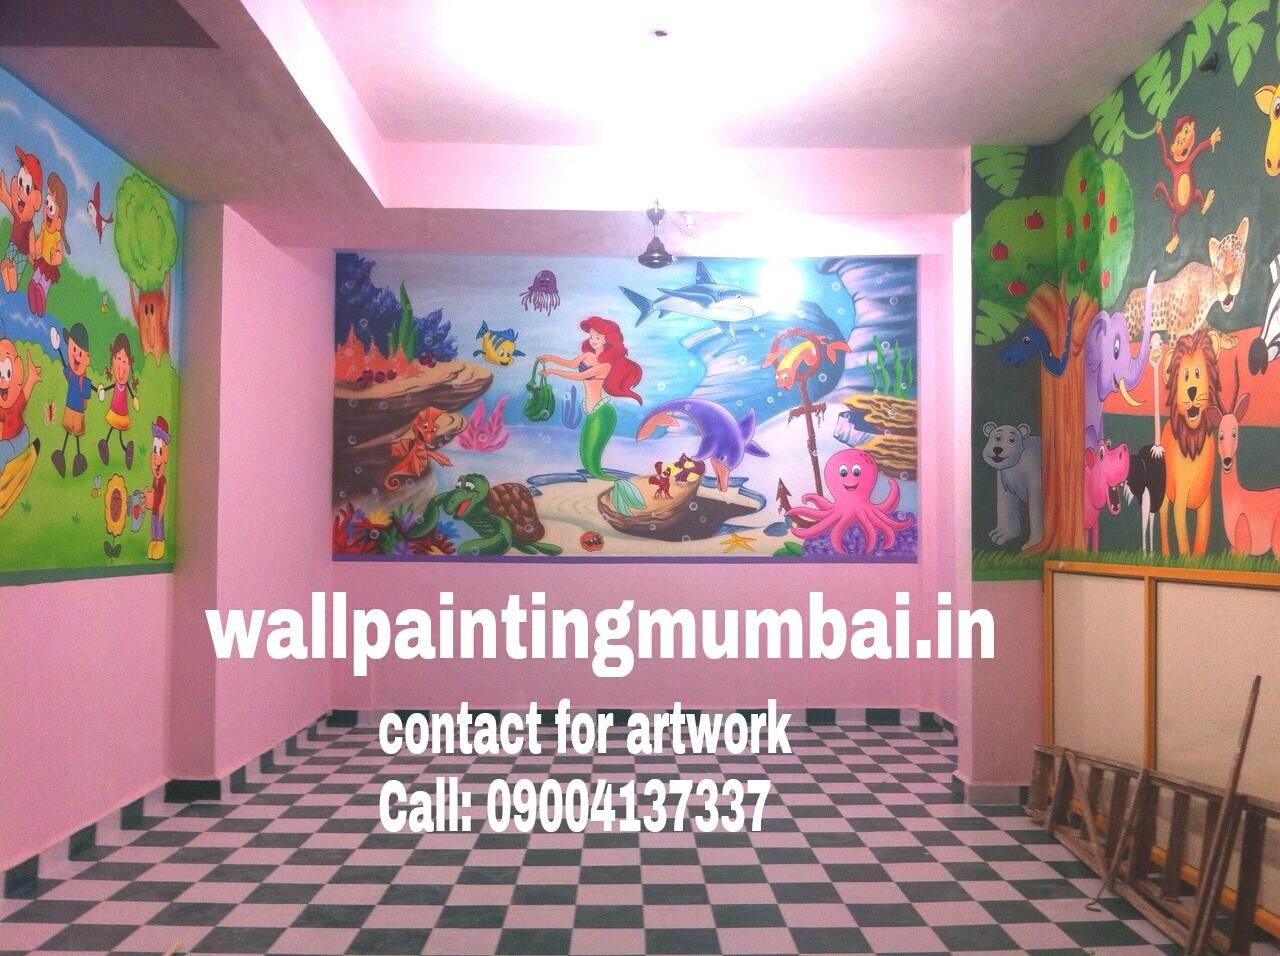 Play School Wall Painting: Playschool Or Preschool Classroom Wall Within Preschool Wall Art (View 6 of 20)